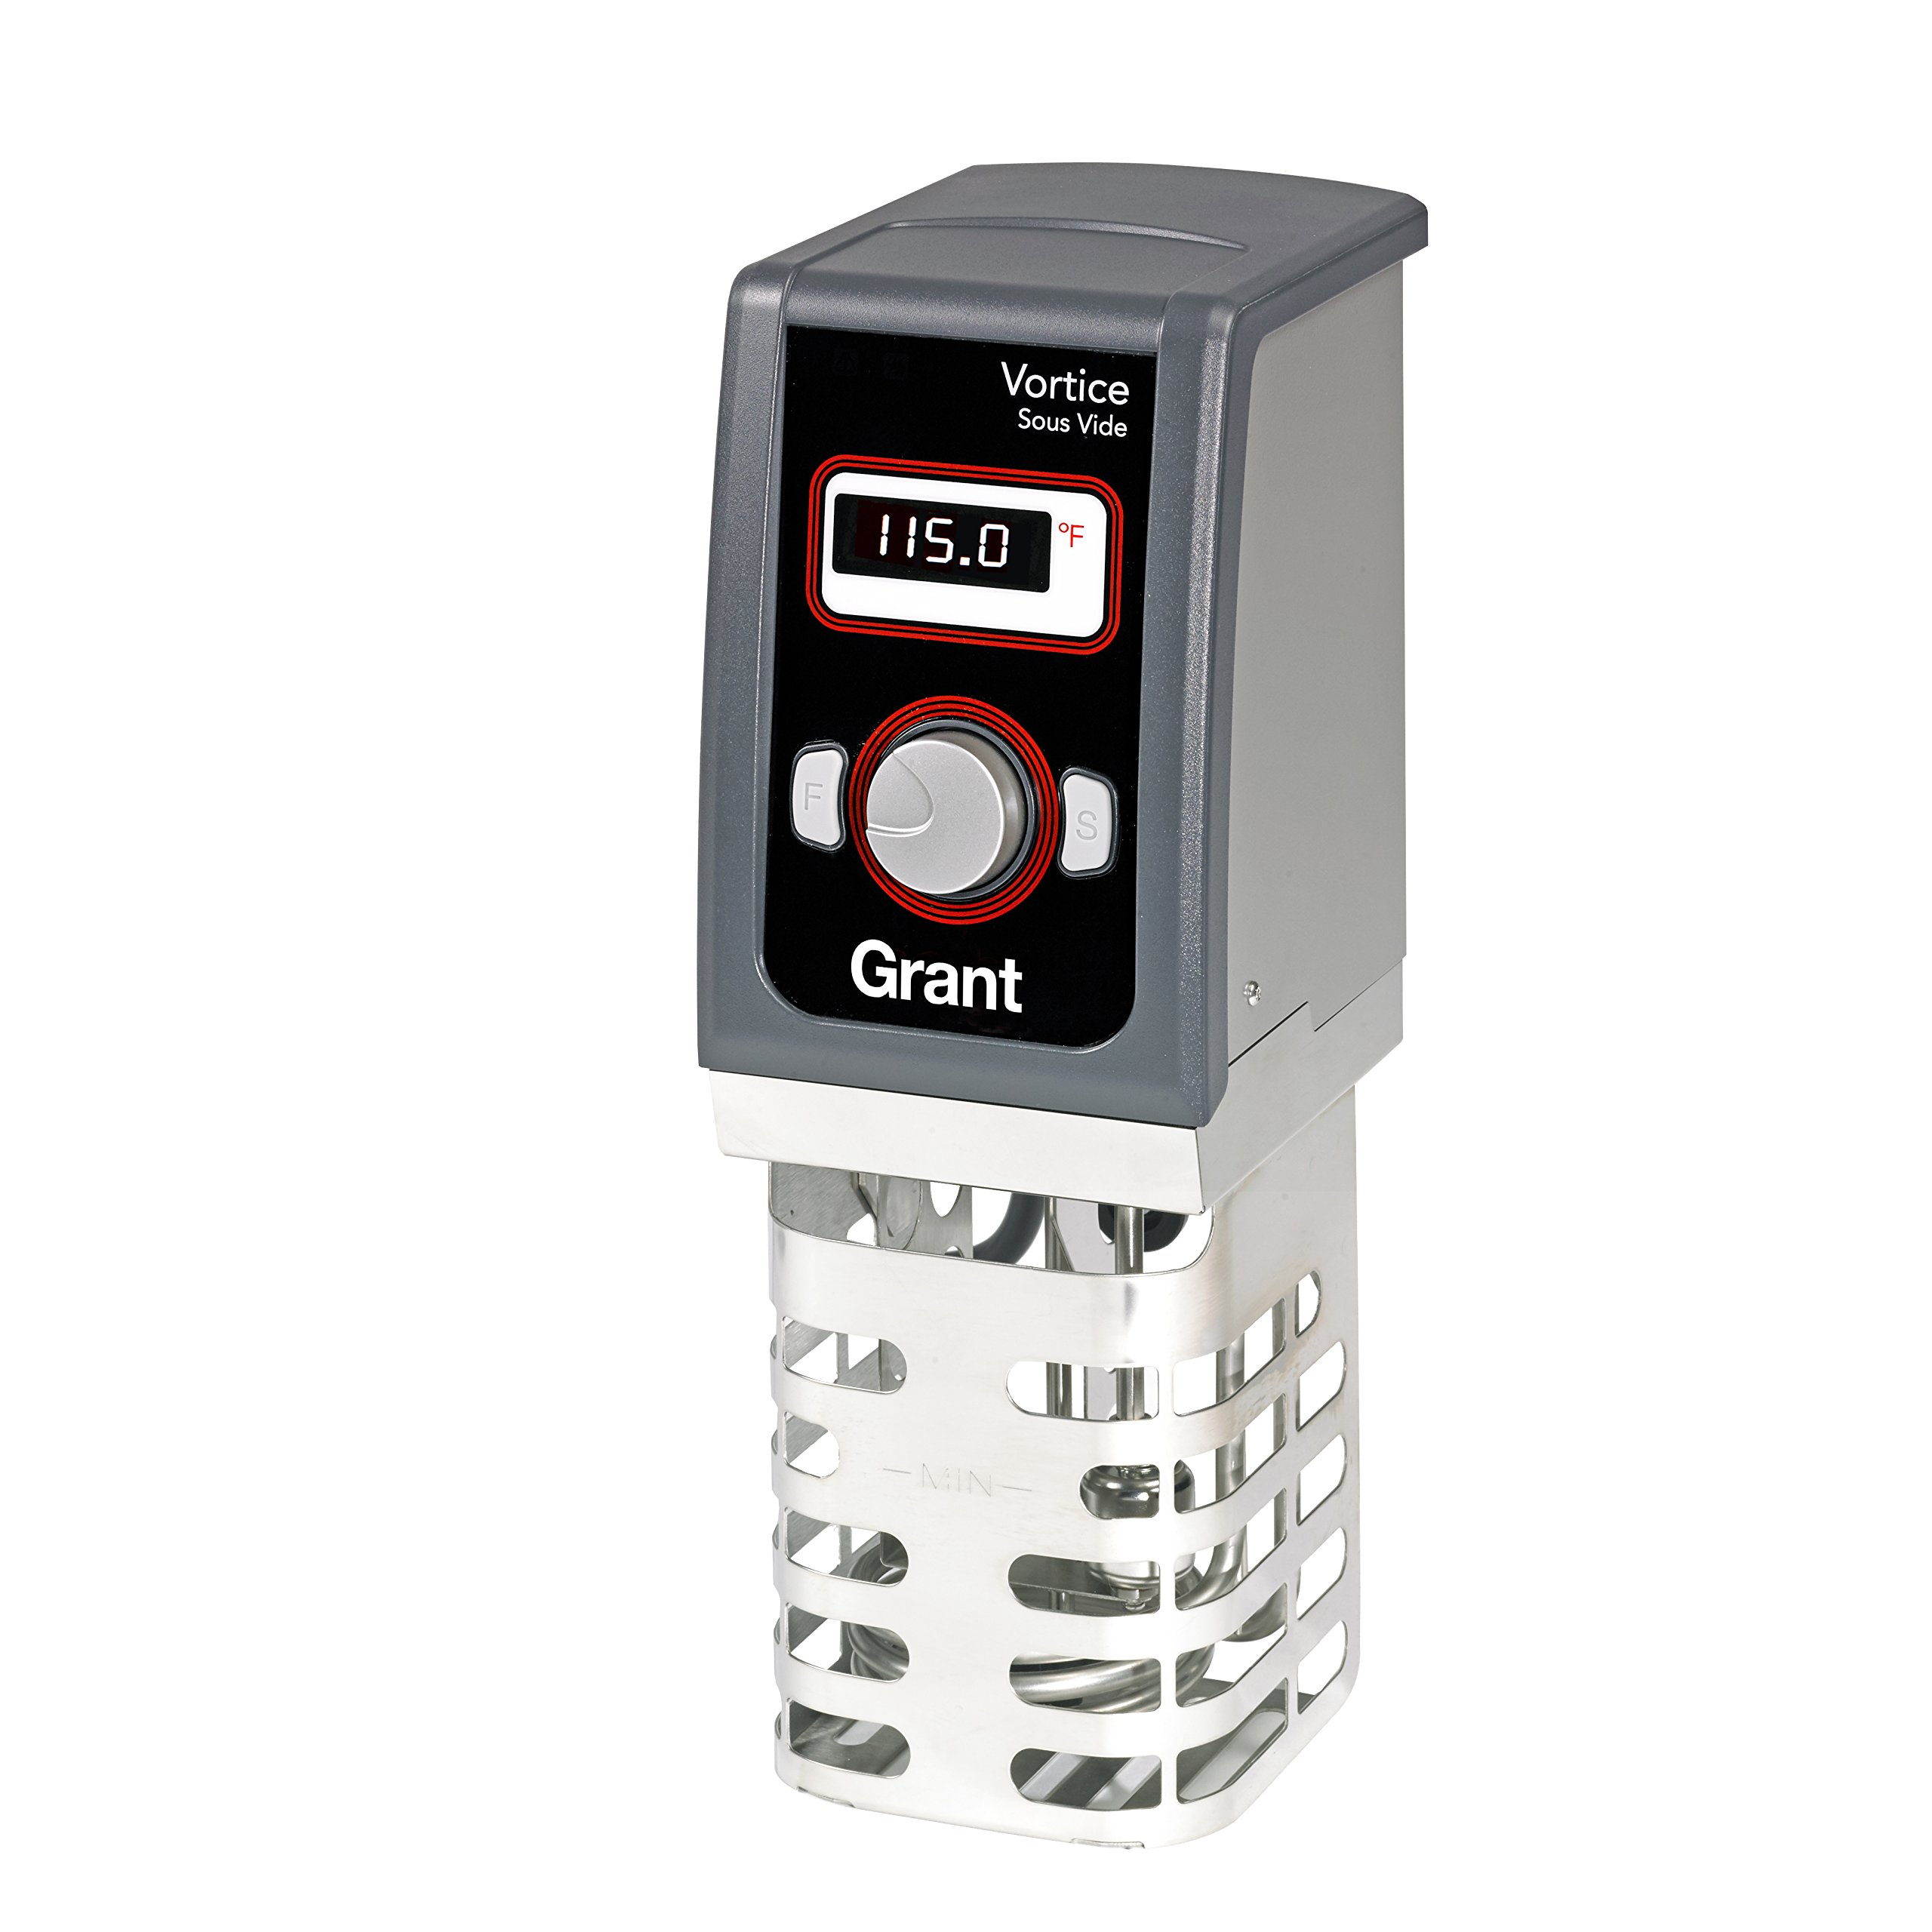 Creative Cuisine by Grant Vortice Sous Vide Immersion Thermal Circulator, Stainless Steel, One Size